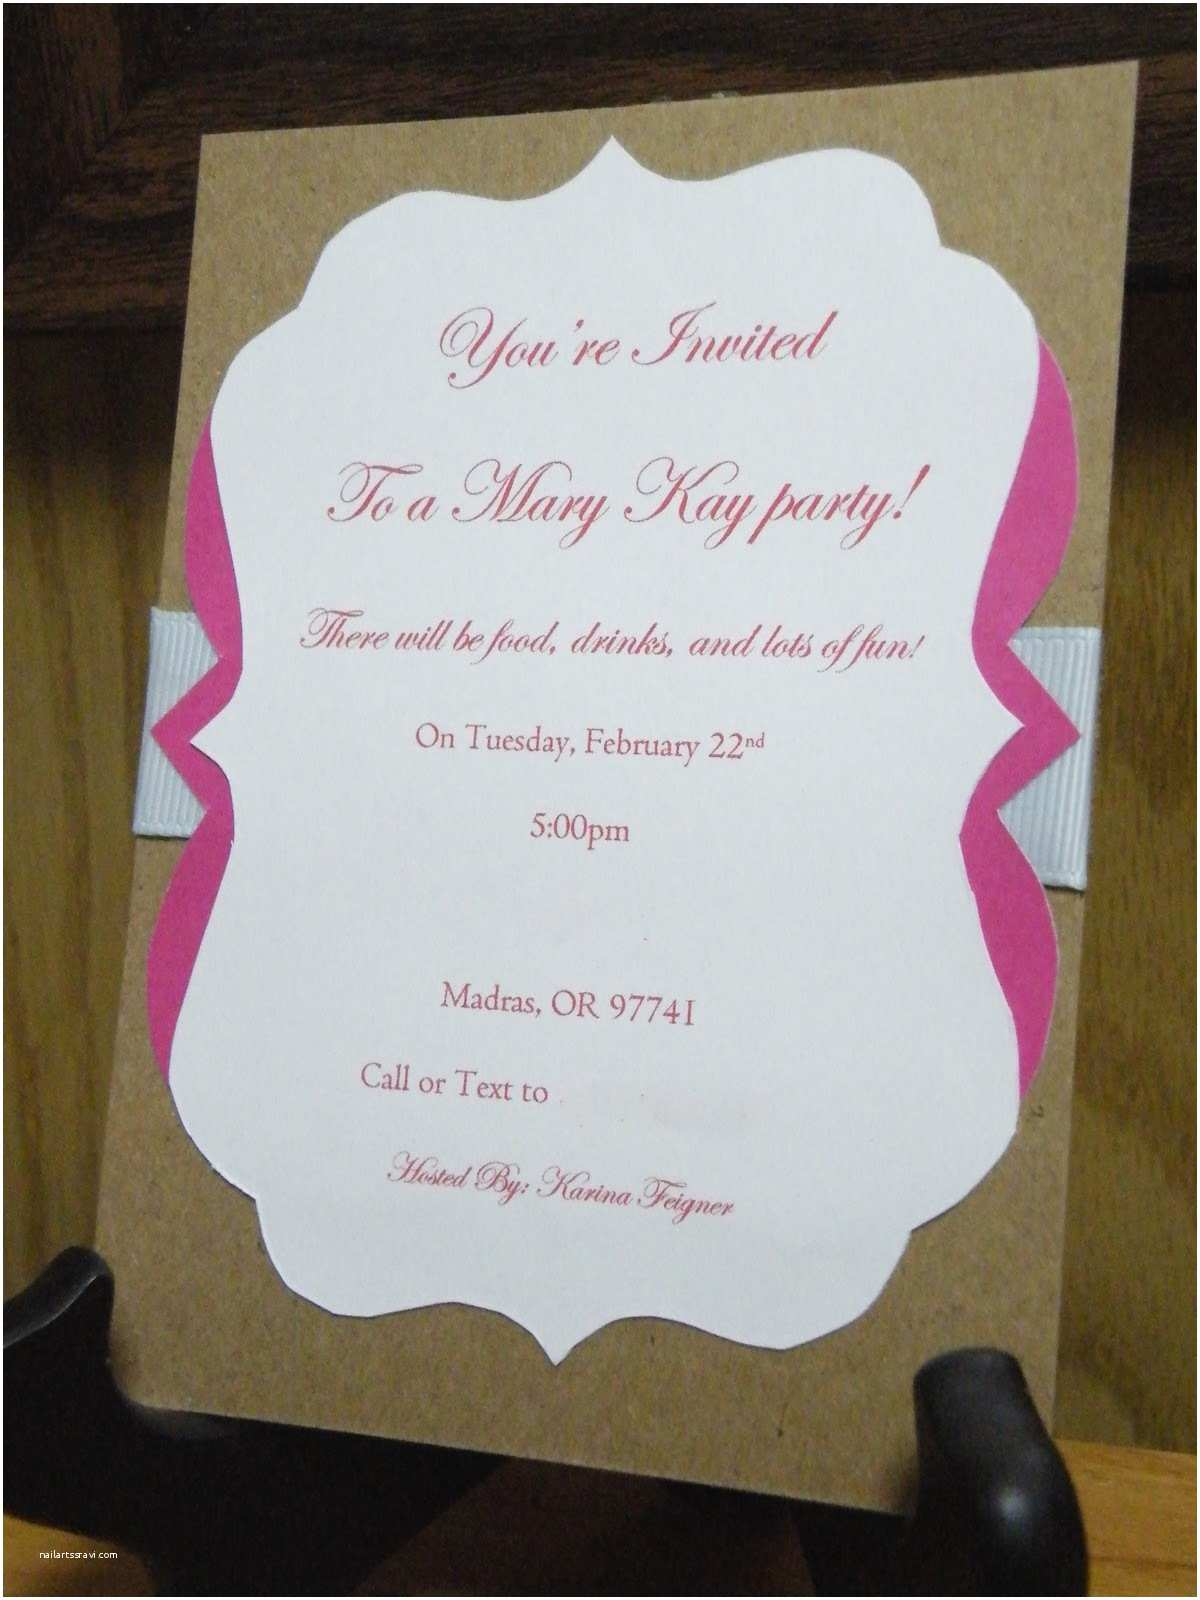 Mary Kay Party Invitations the Crafty Housewife Mary Kay Party Invite